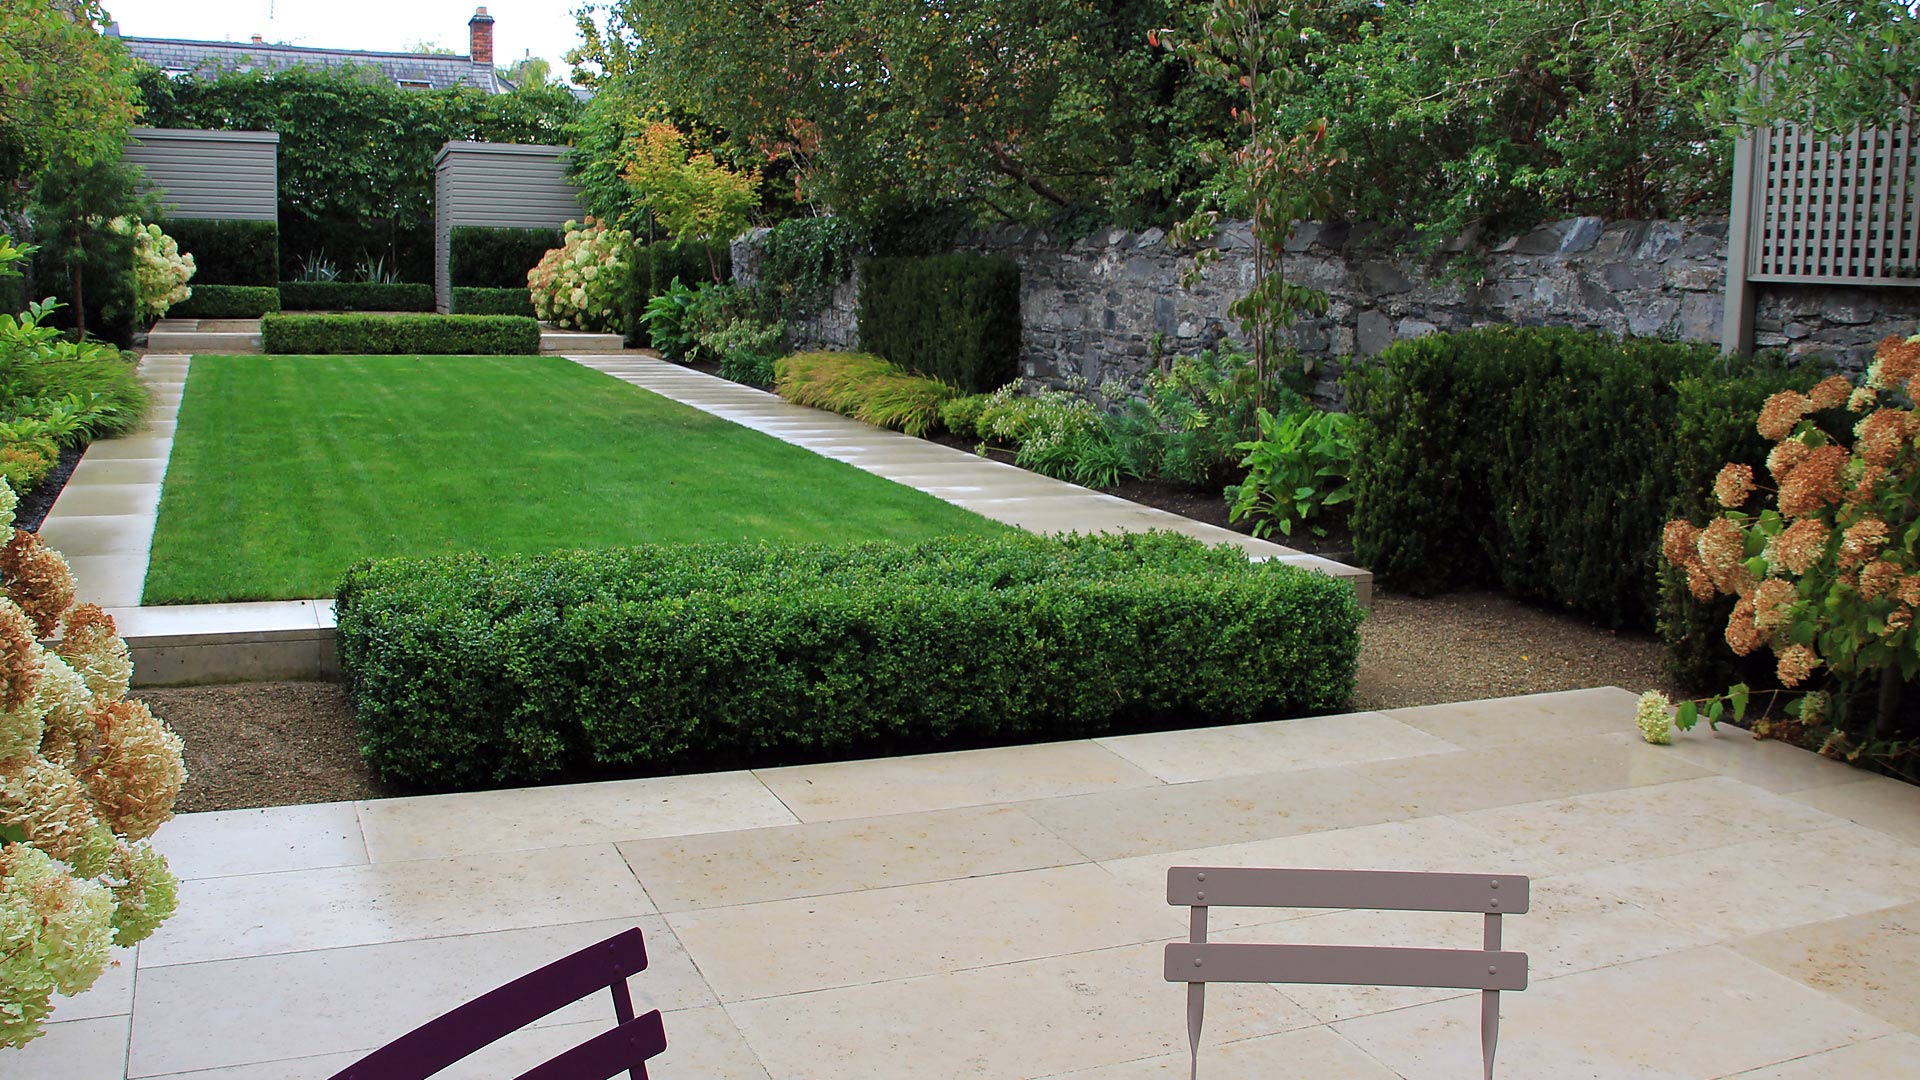 1000 images about trethewey contemporary lawn on